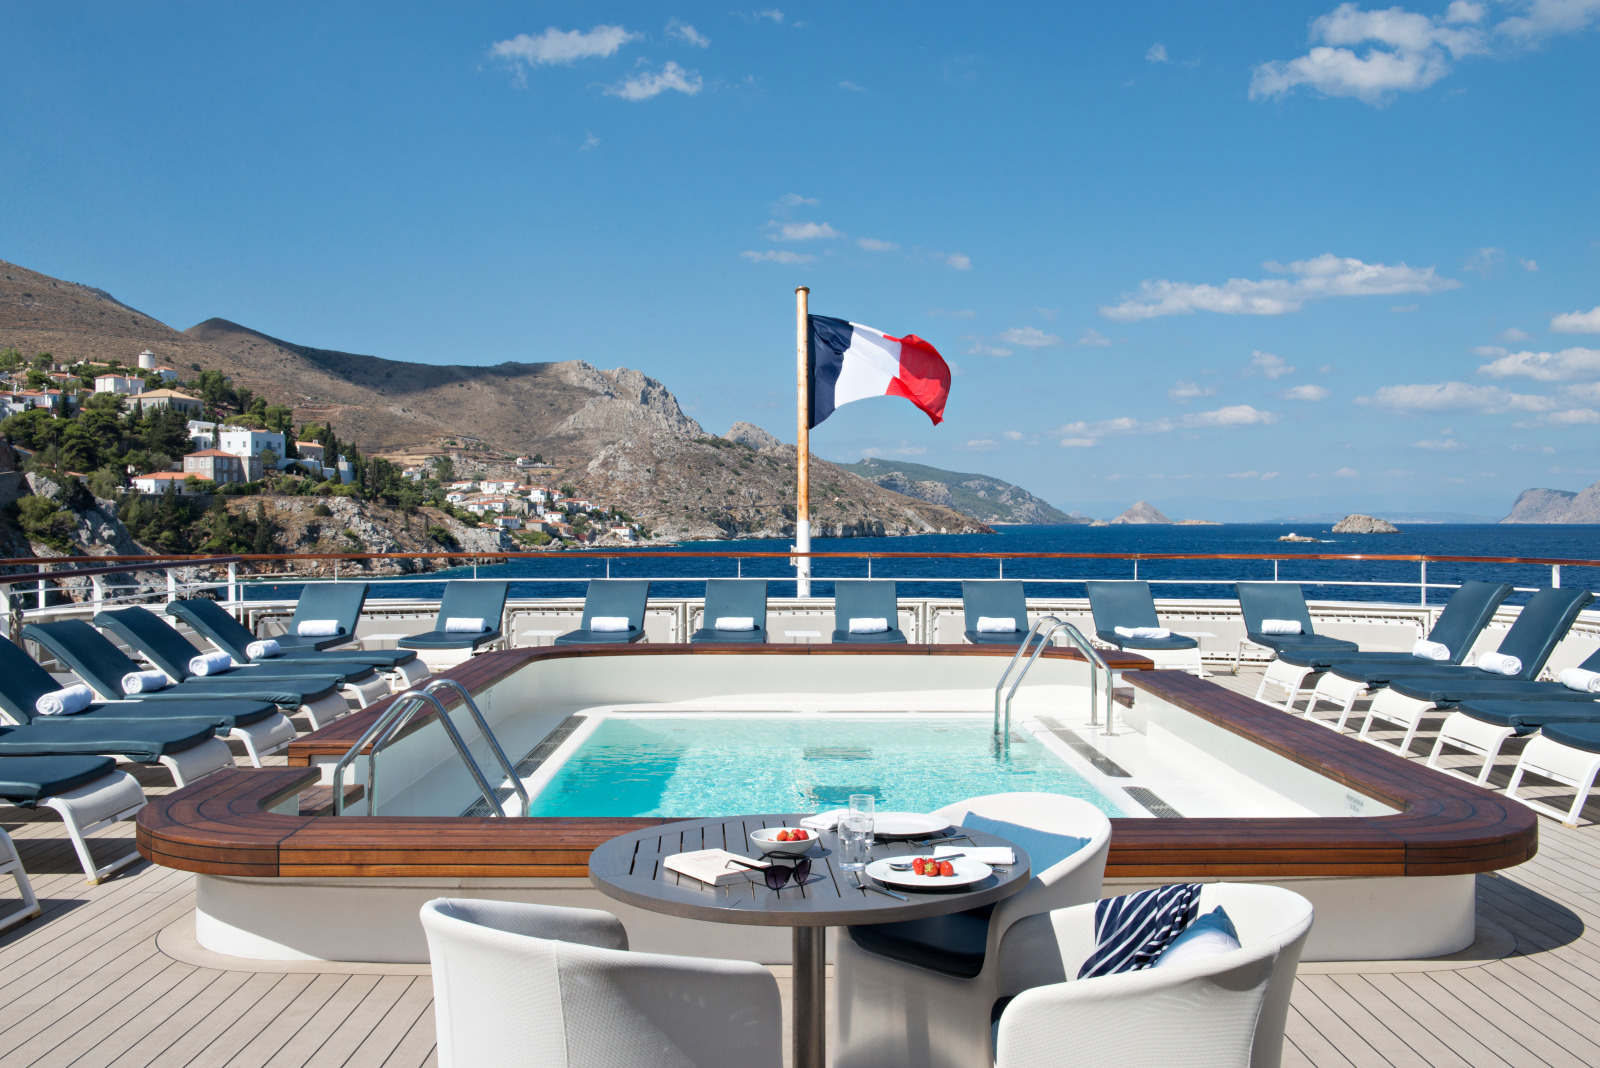 Luxury cruises pool